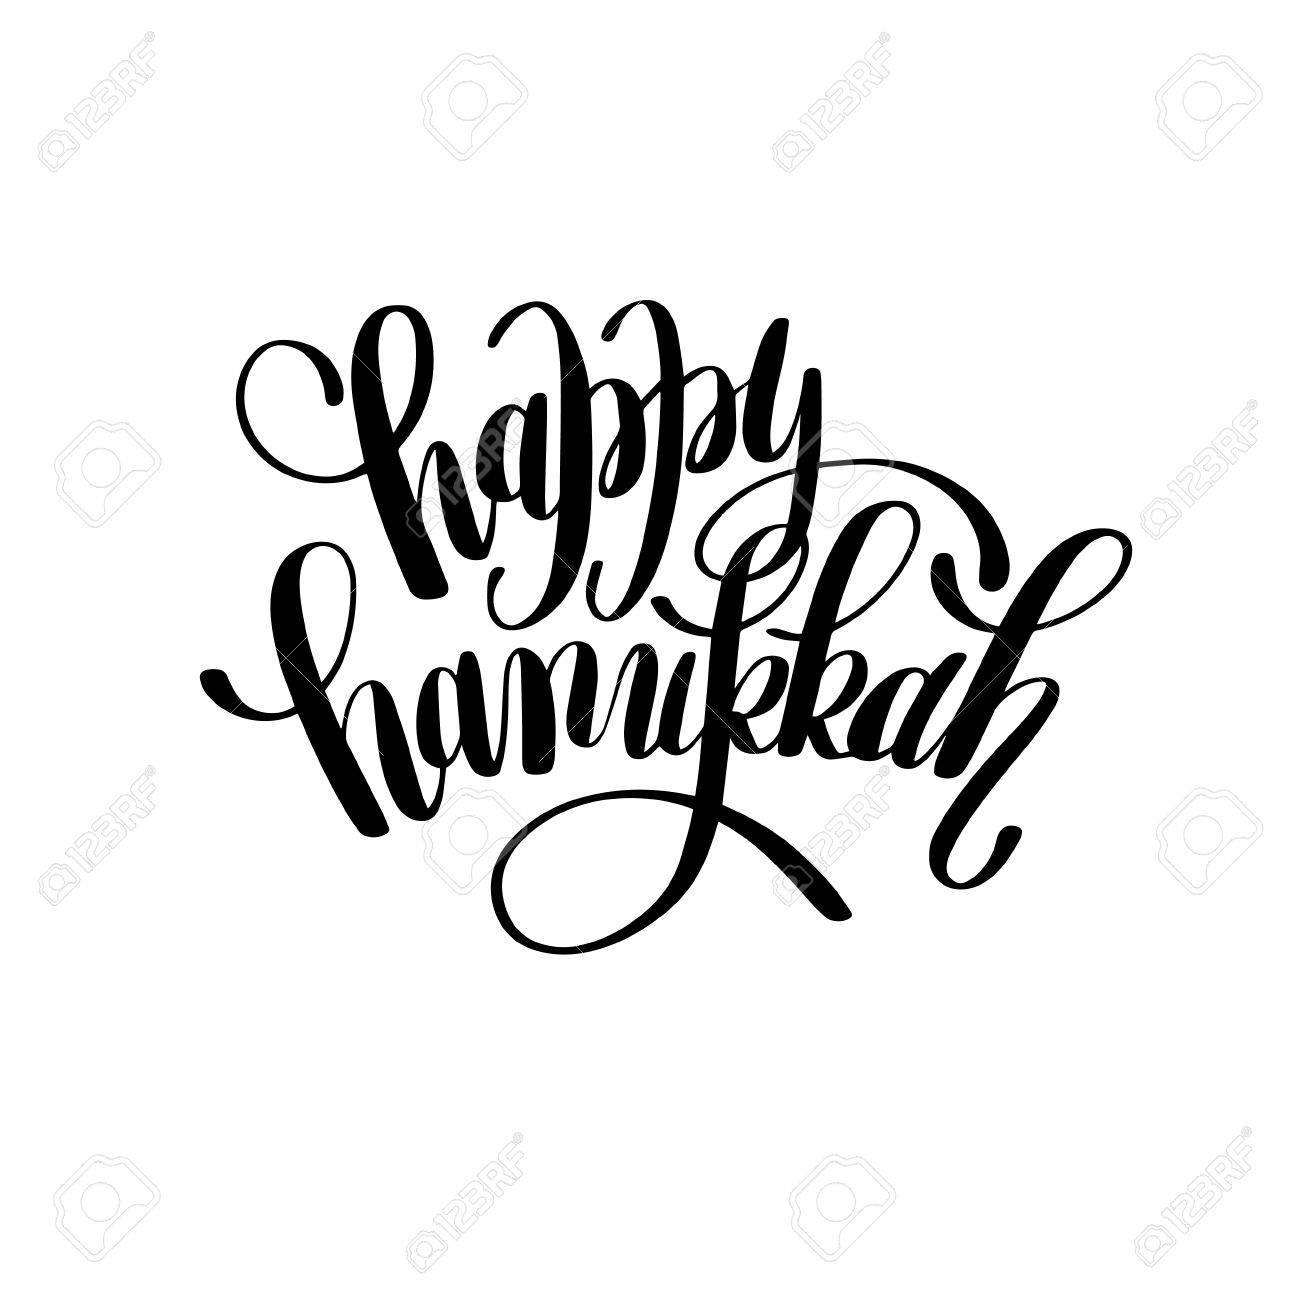 Happy hanukkah handwritten lettering inscription to jewish holiday happy hanukkah handwritten lettering inscription to jewish holiday greeting card stock vector 66910639 m4hsunfo Image collections